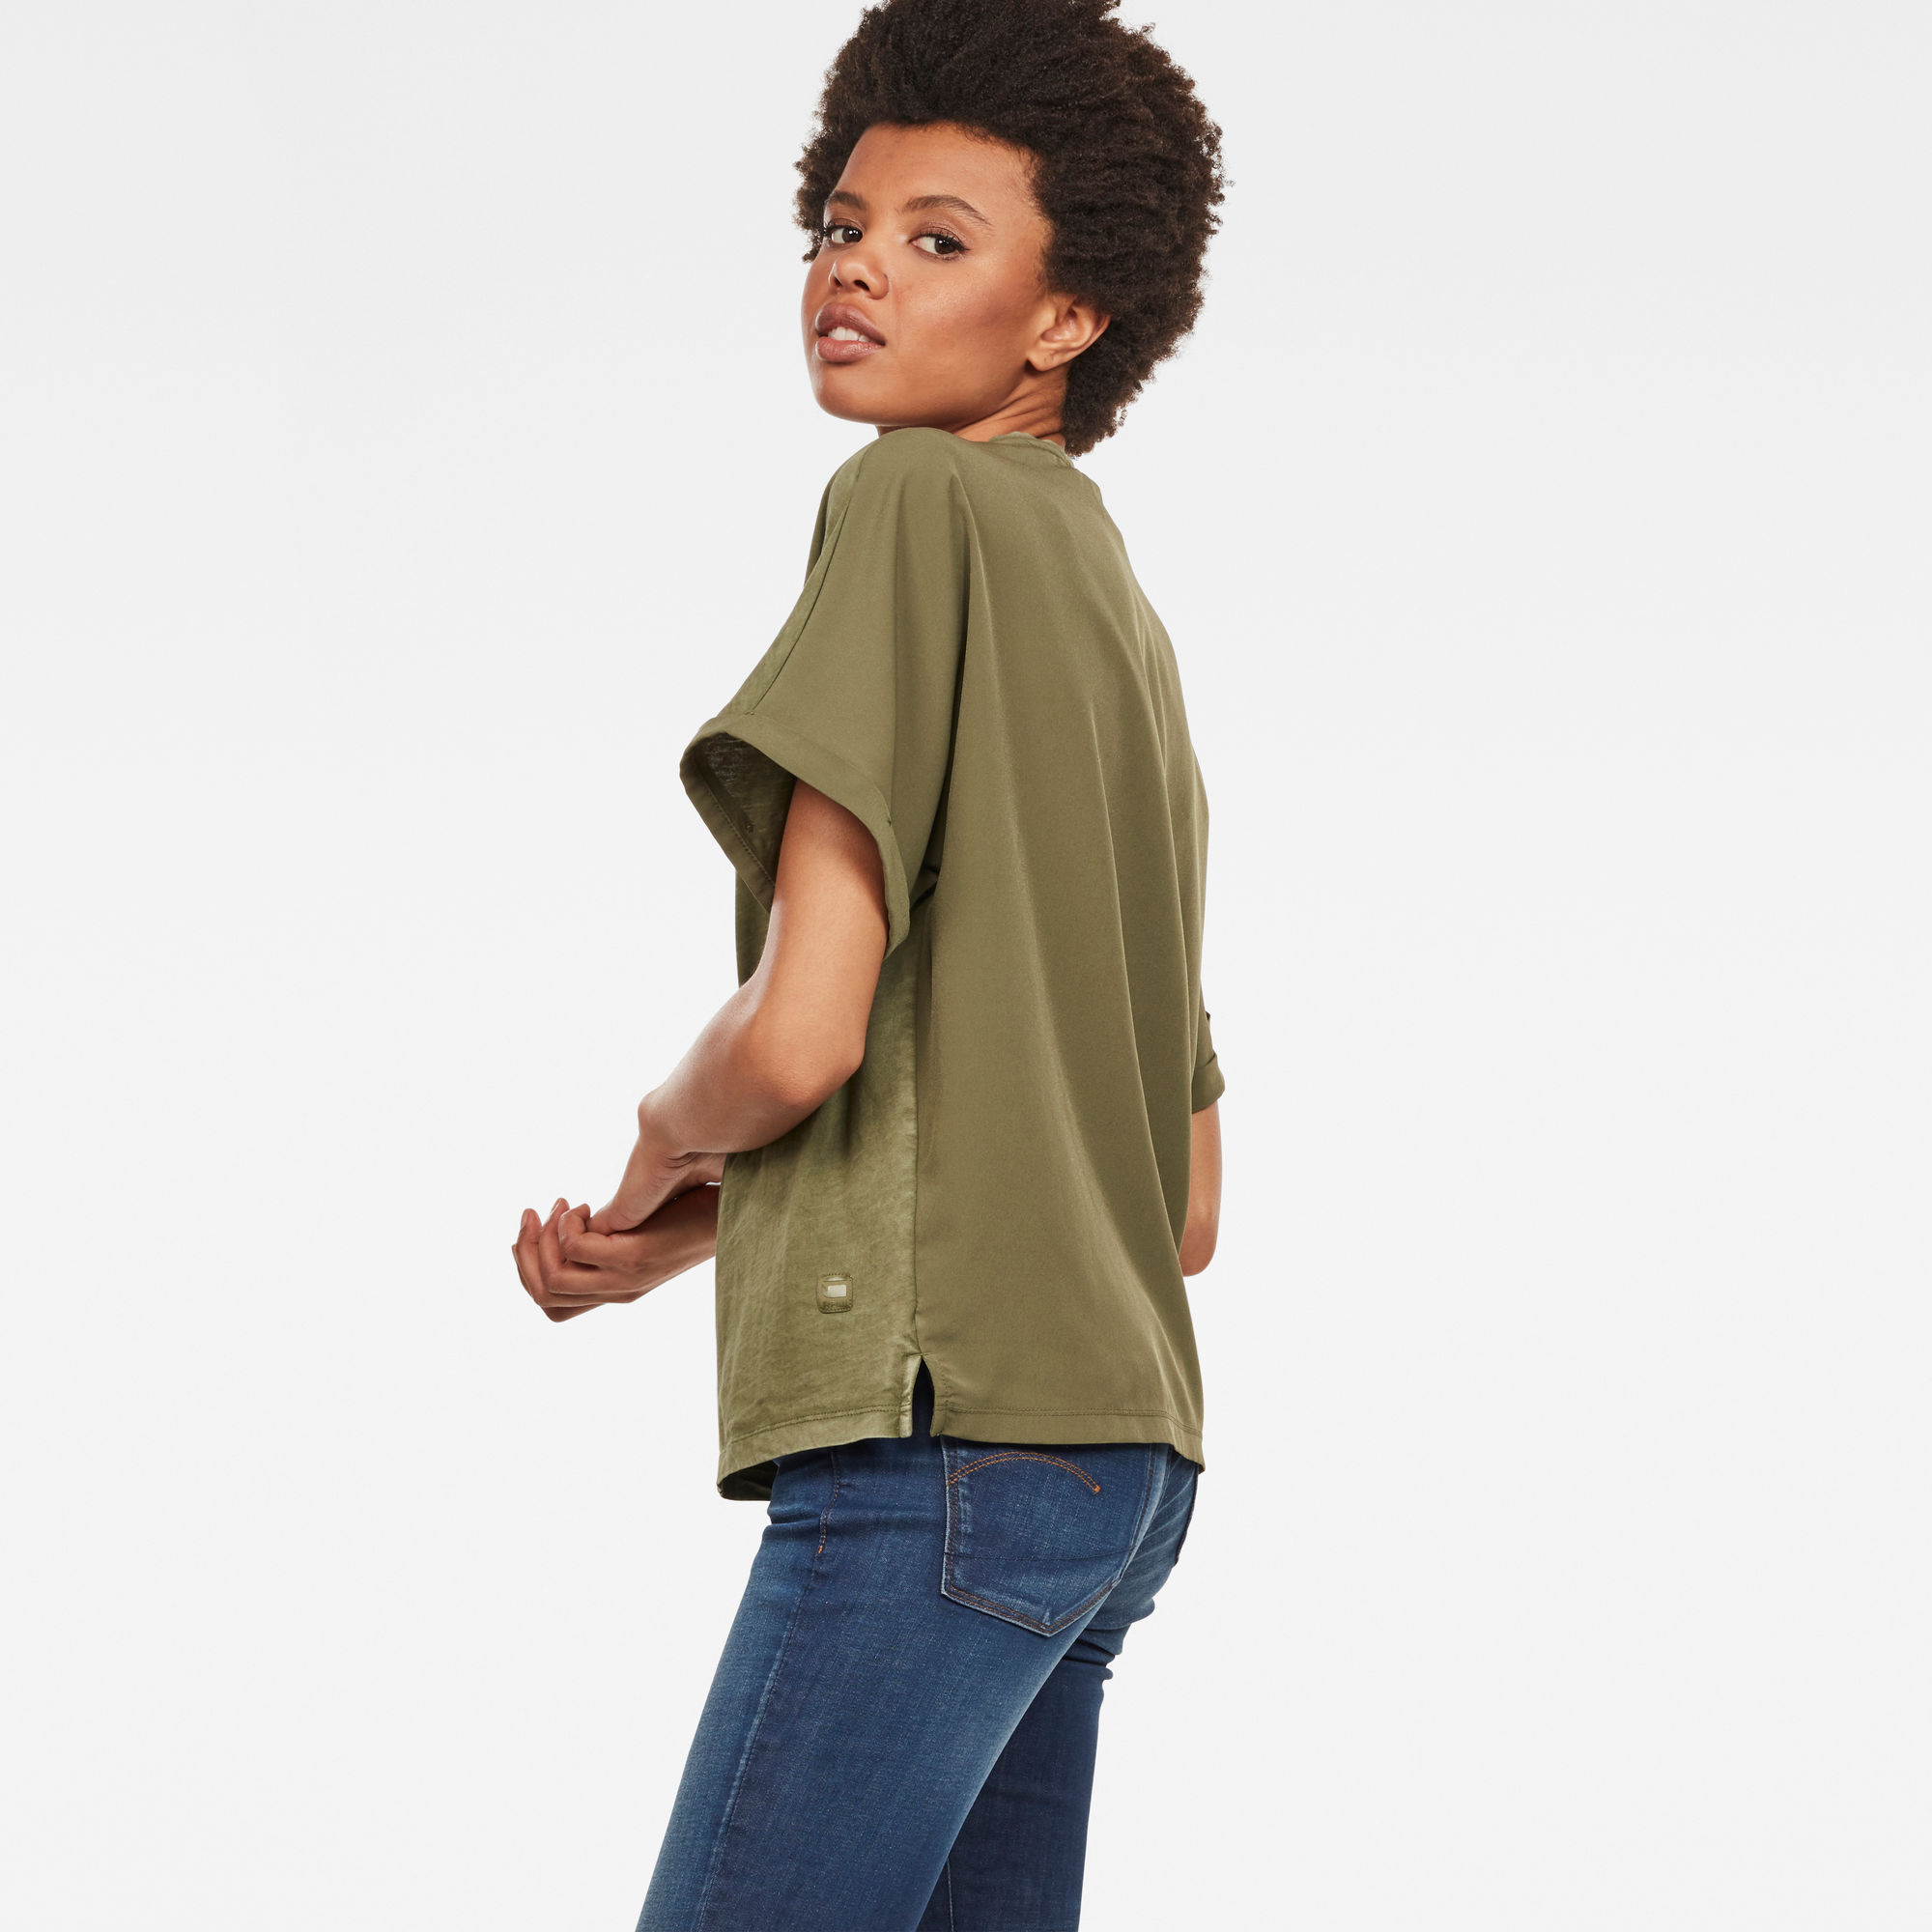 G-Star RAW Joosa Top